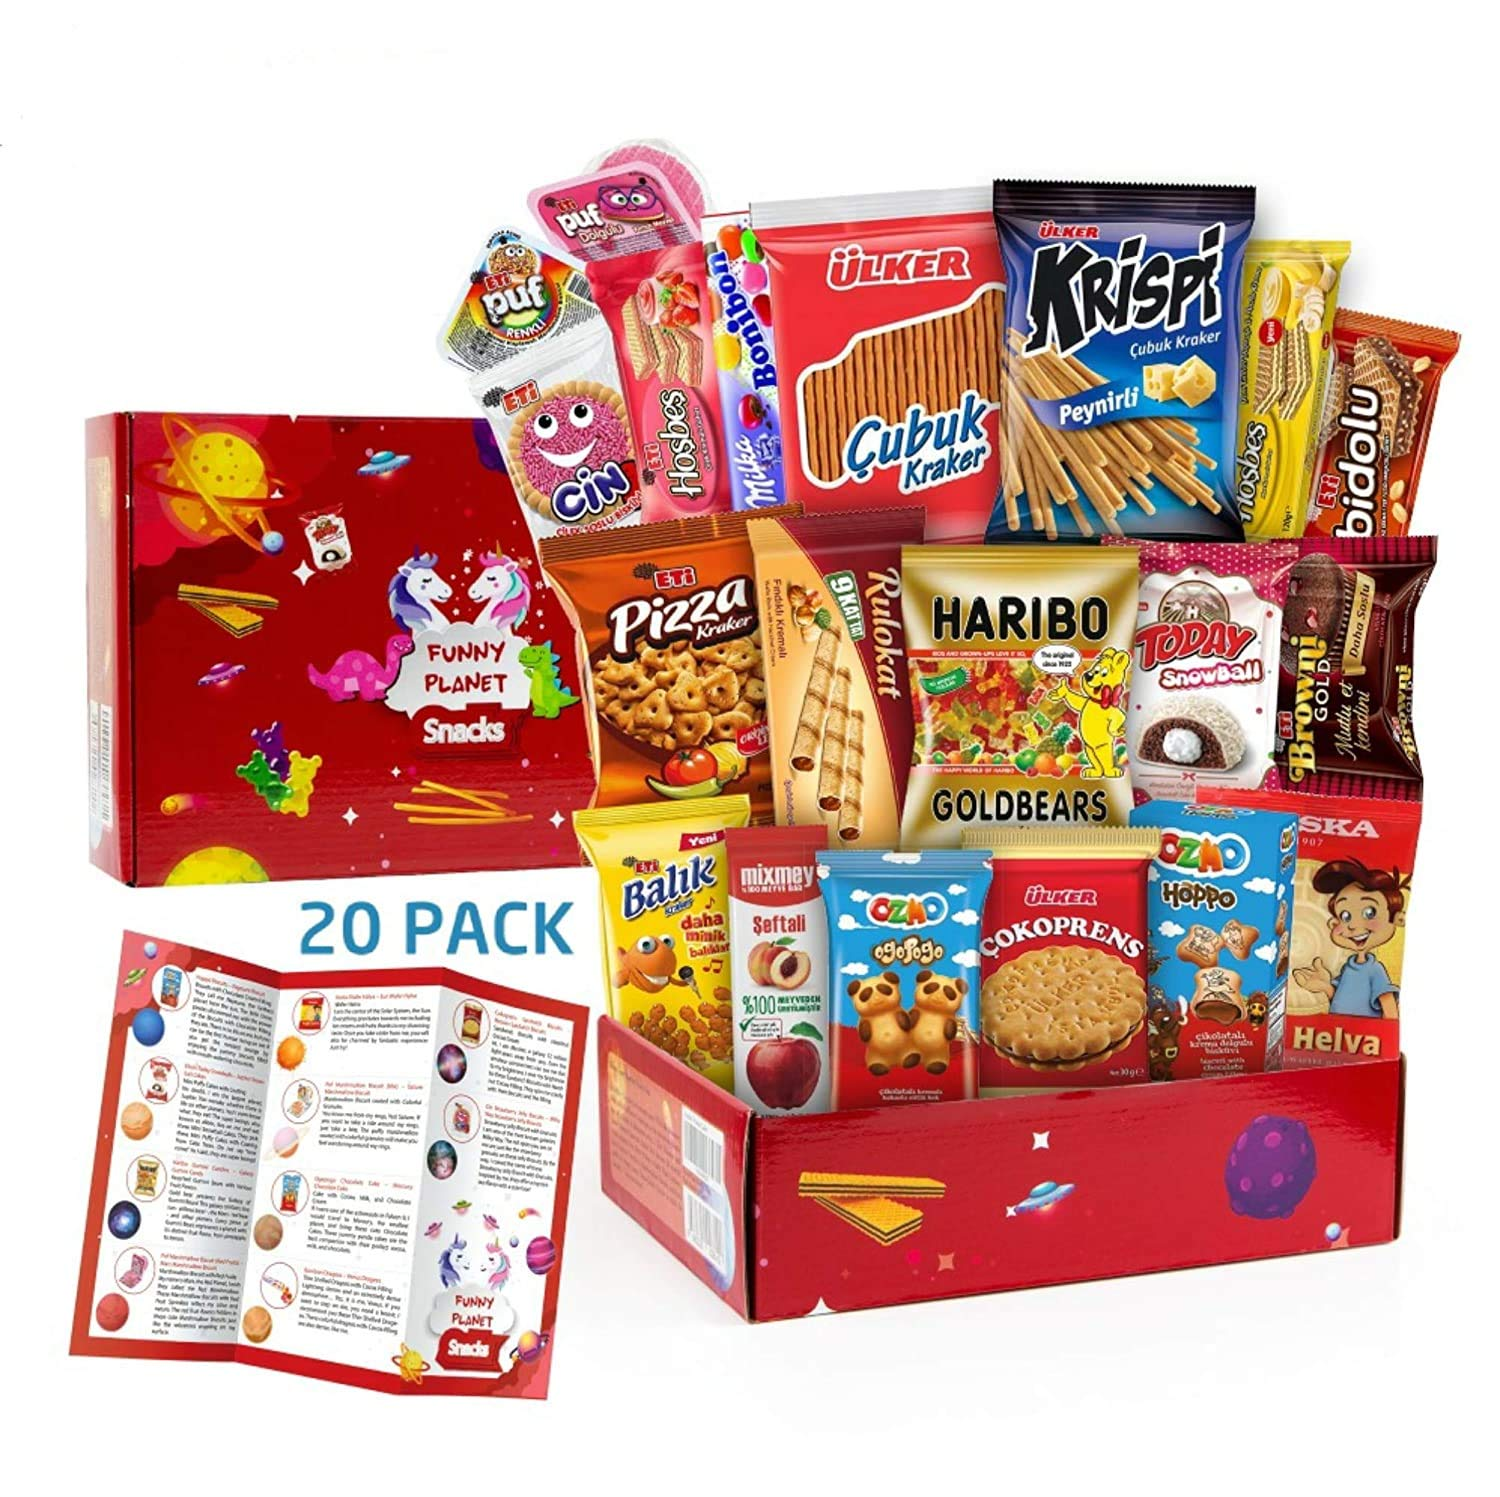 Carian's International Snack Box - Variety Assortment of Turkish Gourmet Treats, Crackers, Cookies, 20Ct Care Pack